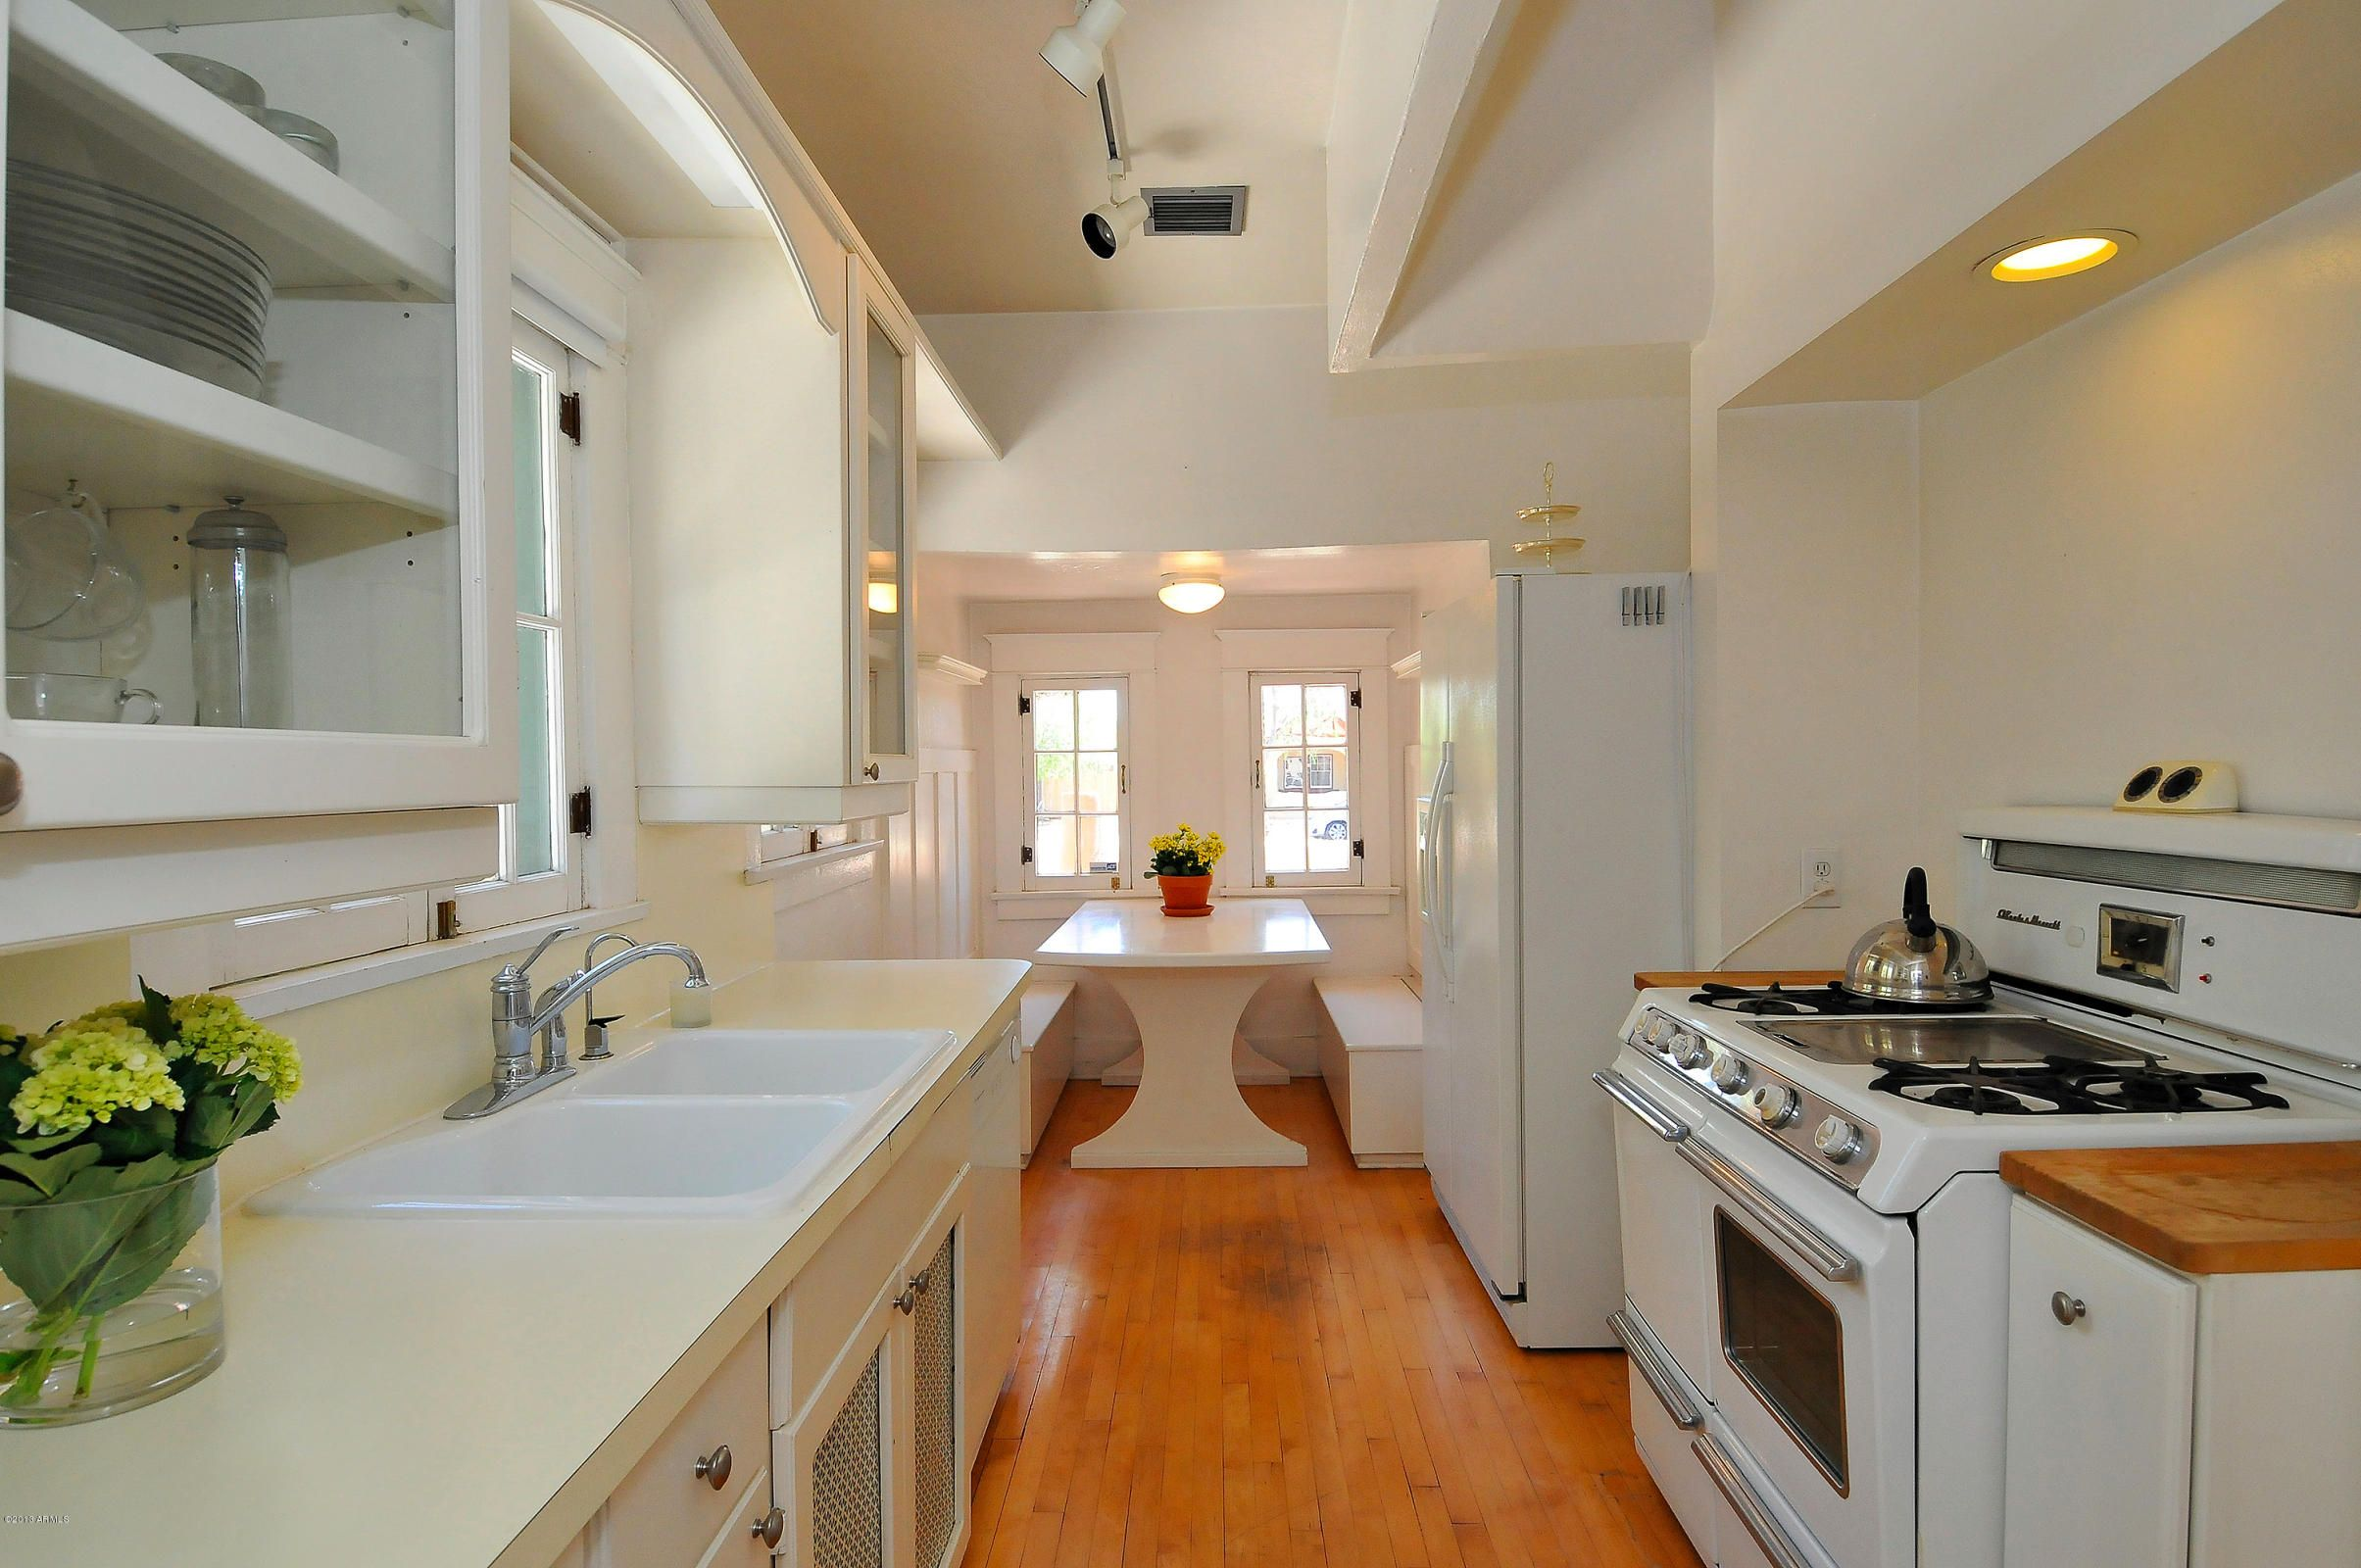 I really don't like anything in this kitchen except the color, the breakfast nook and maybe the stove.